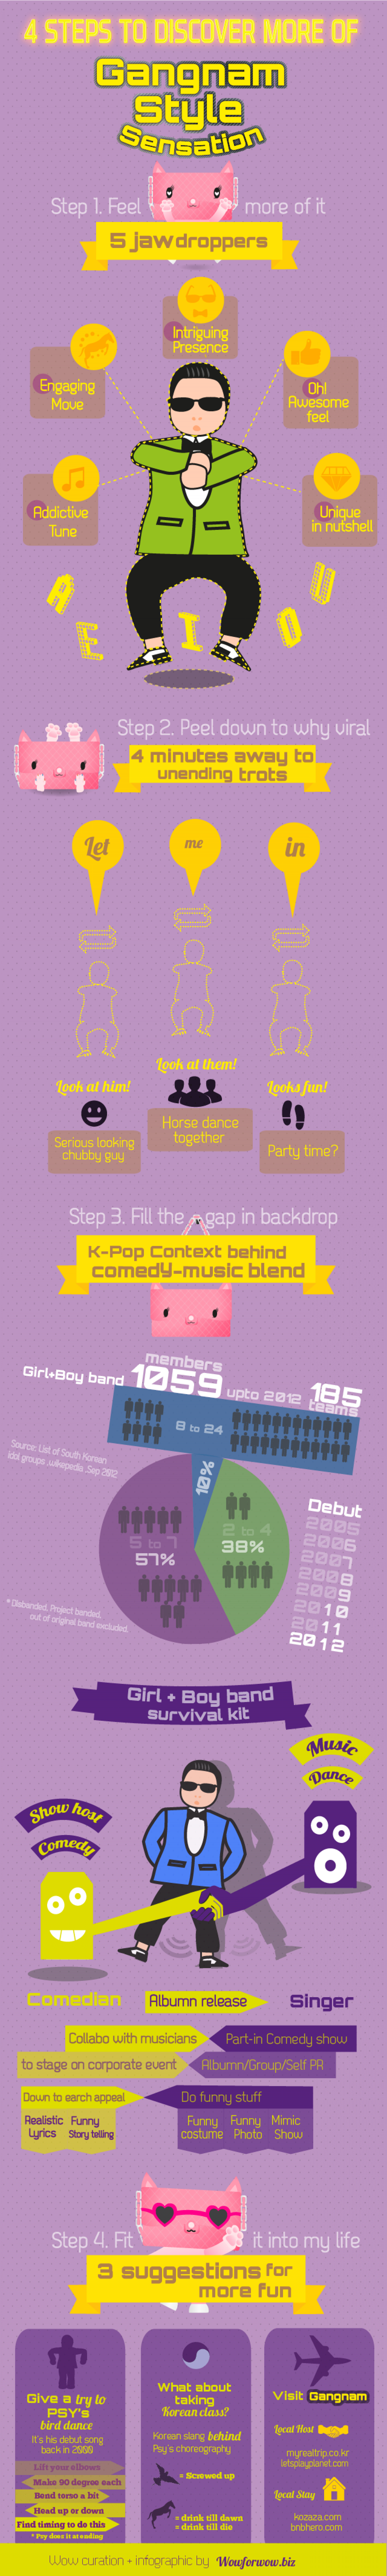 4 Steps to Discover more of Gangnam Style Infographic